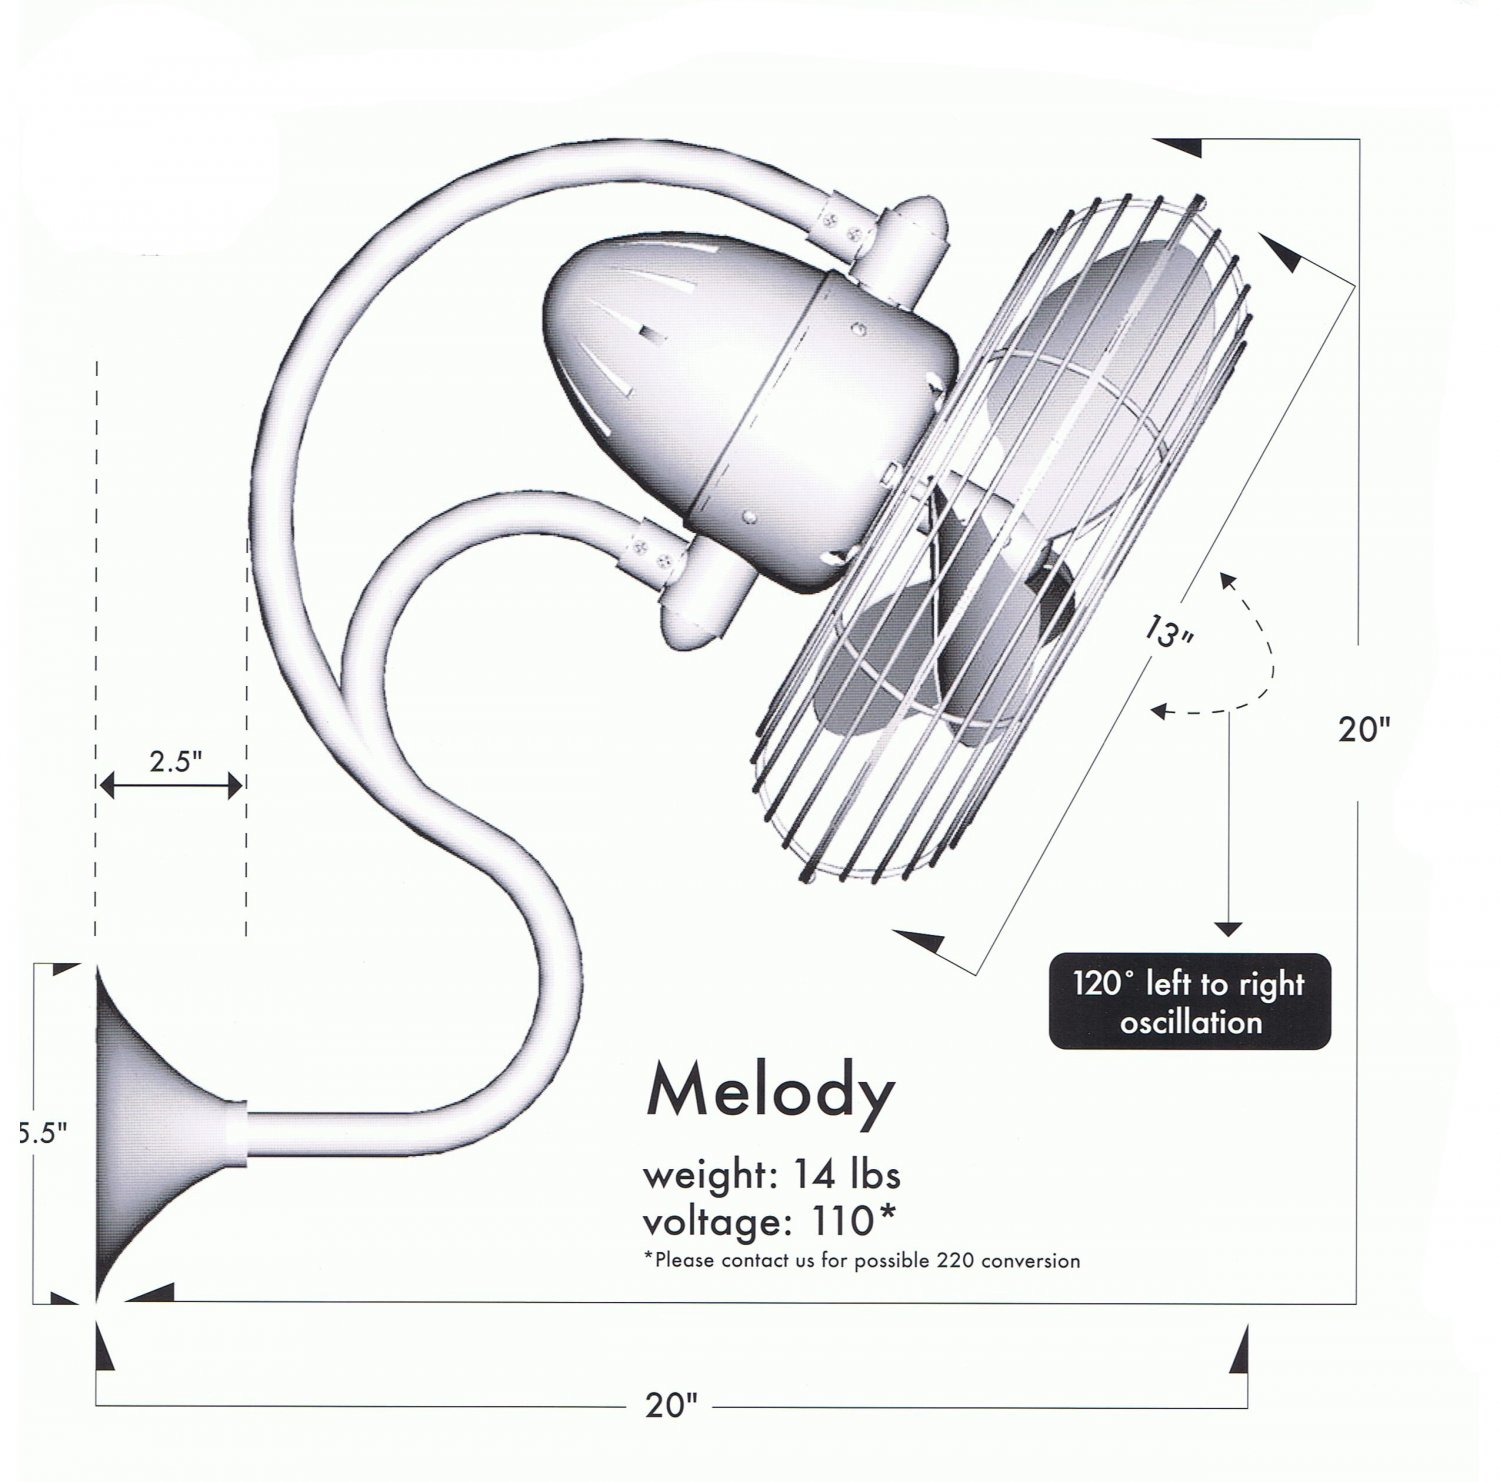 melody oscillating wall